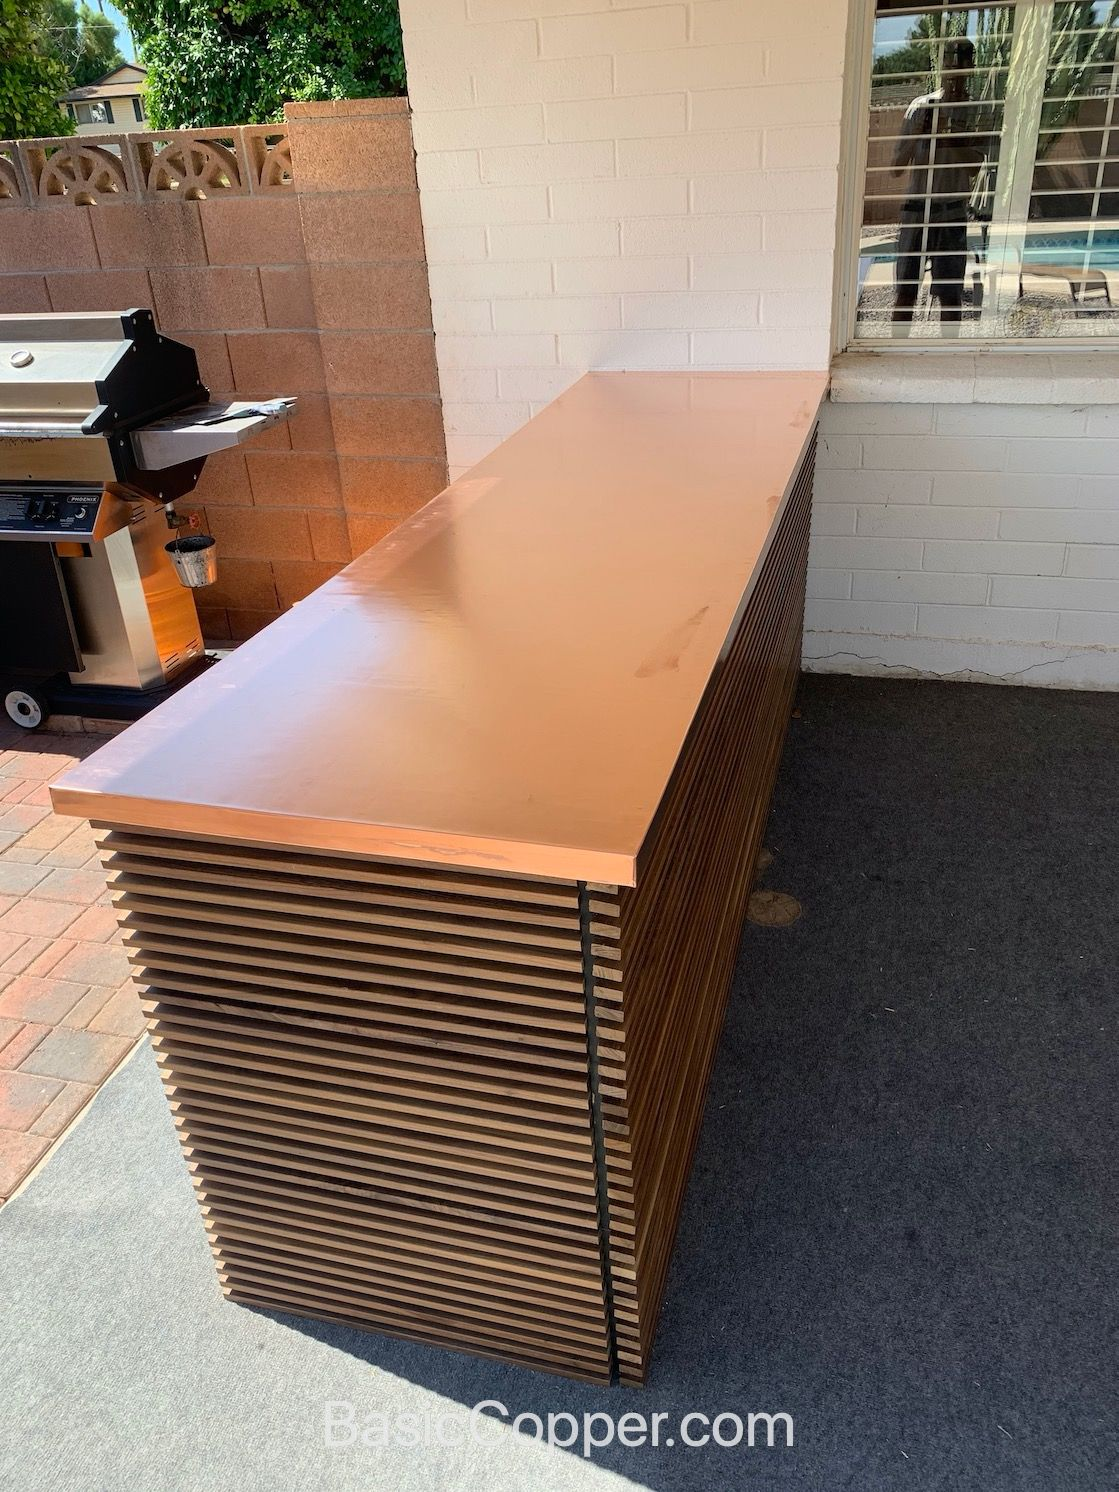 Outdoor Copper Countertop for a BBQ